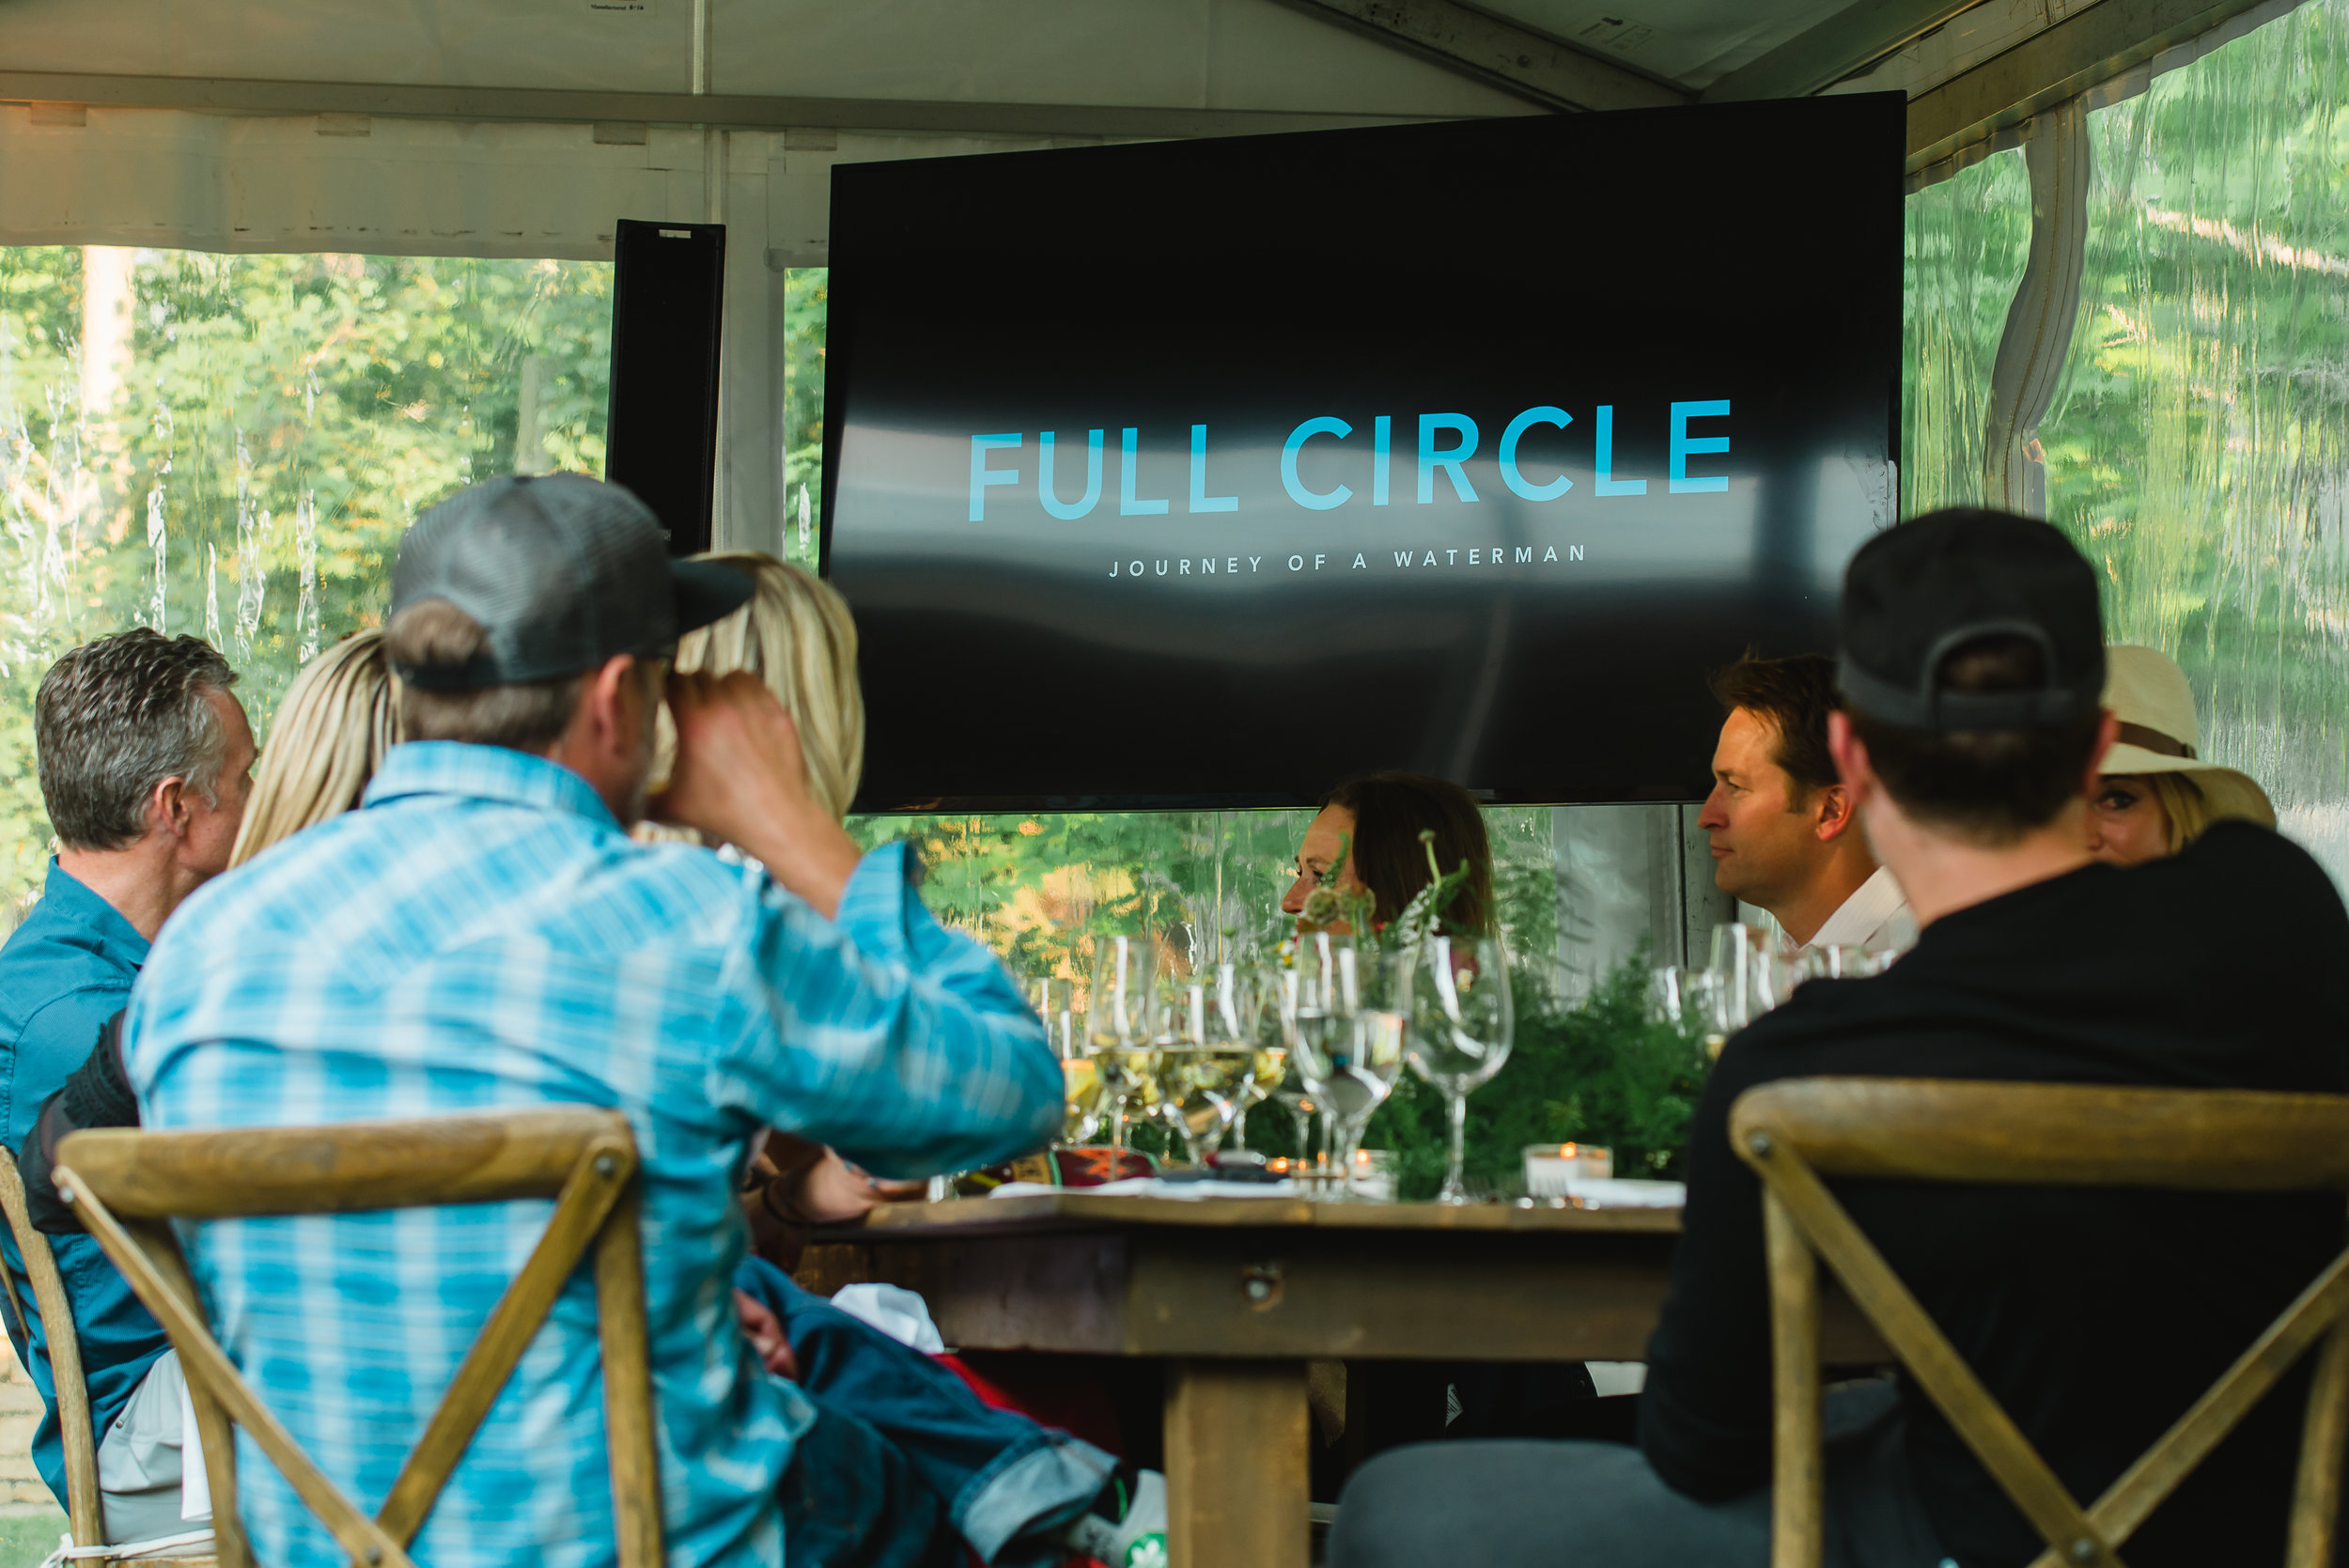 Full Circle - Journey of a Waterman Short Film Documentary by Eric Wolfinger